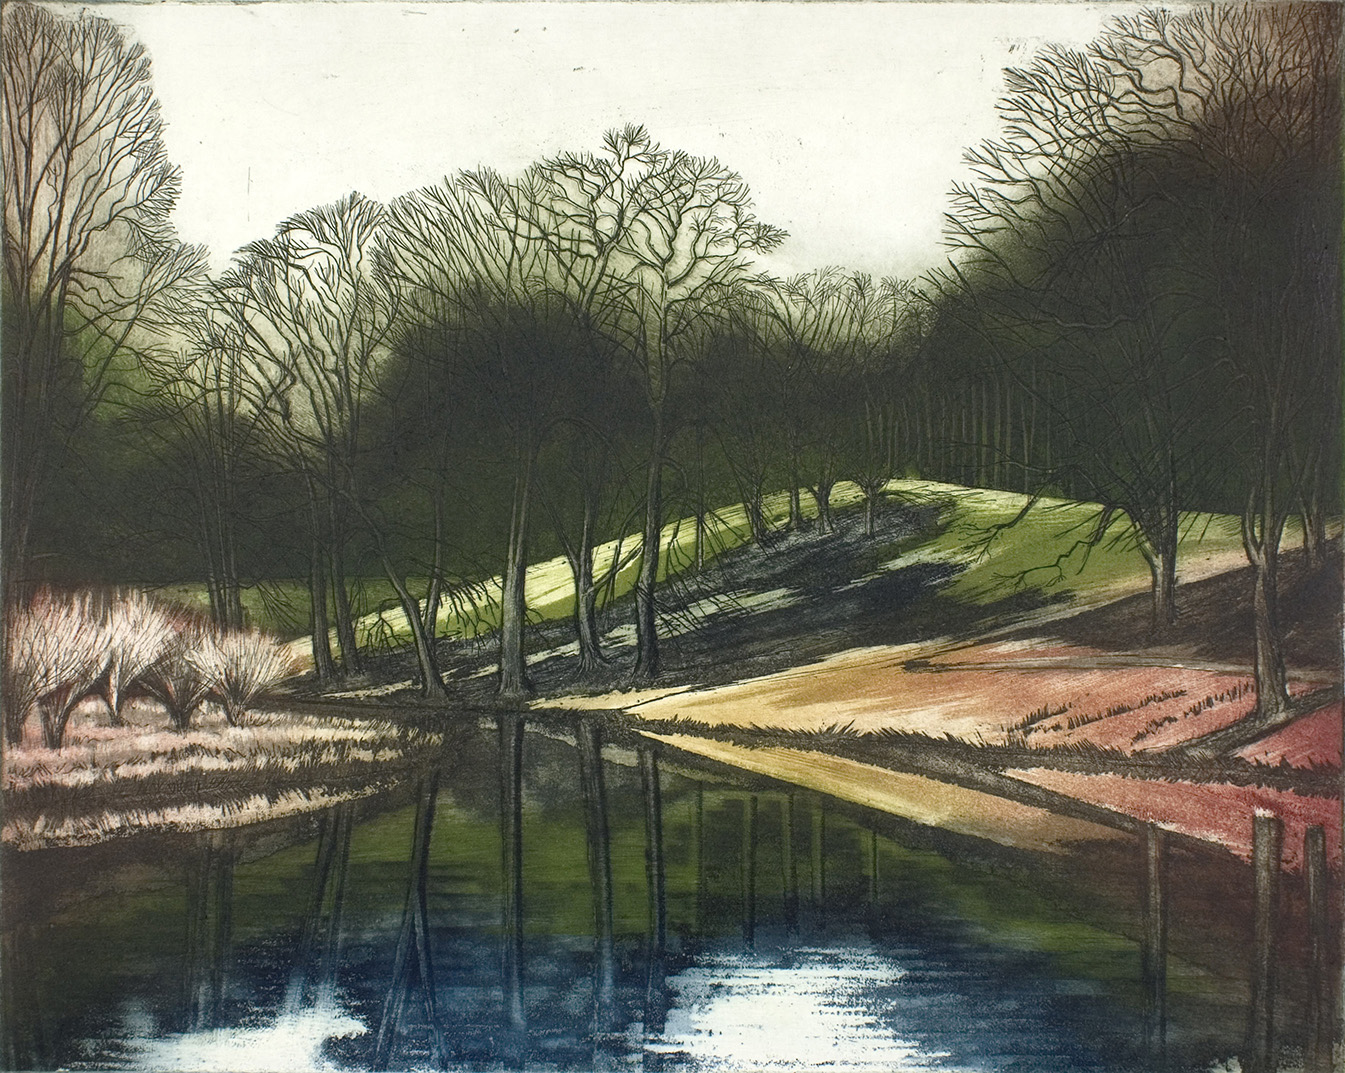 'By the Lake, Blenheim' by Morna Rhys